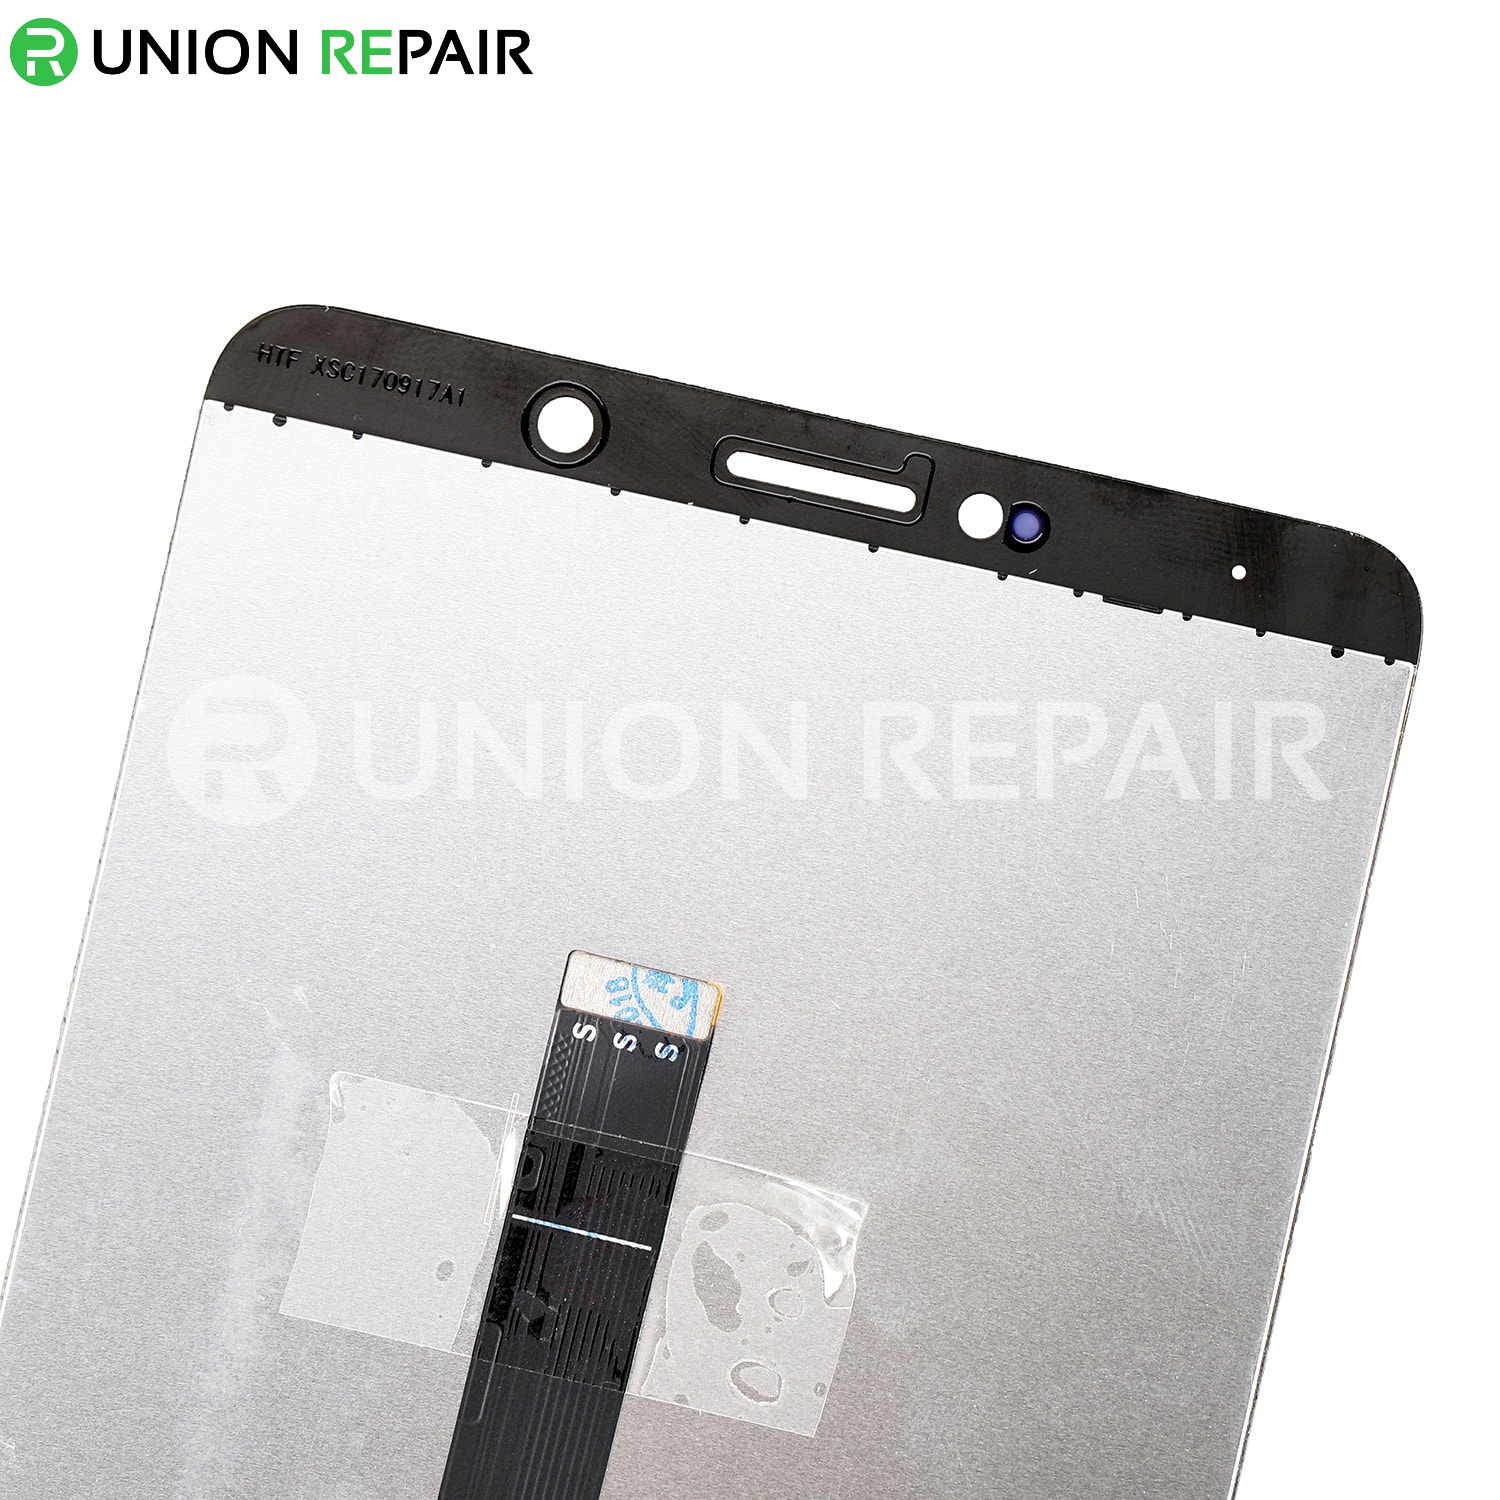 Replacement for Huawei Mate 10 LCD with Digitizer Assembly - Mocha Brown